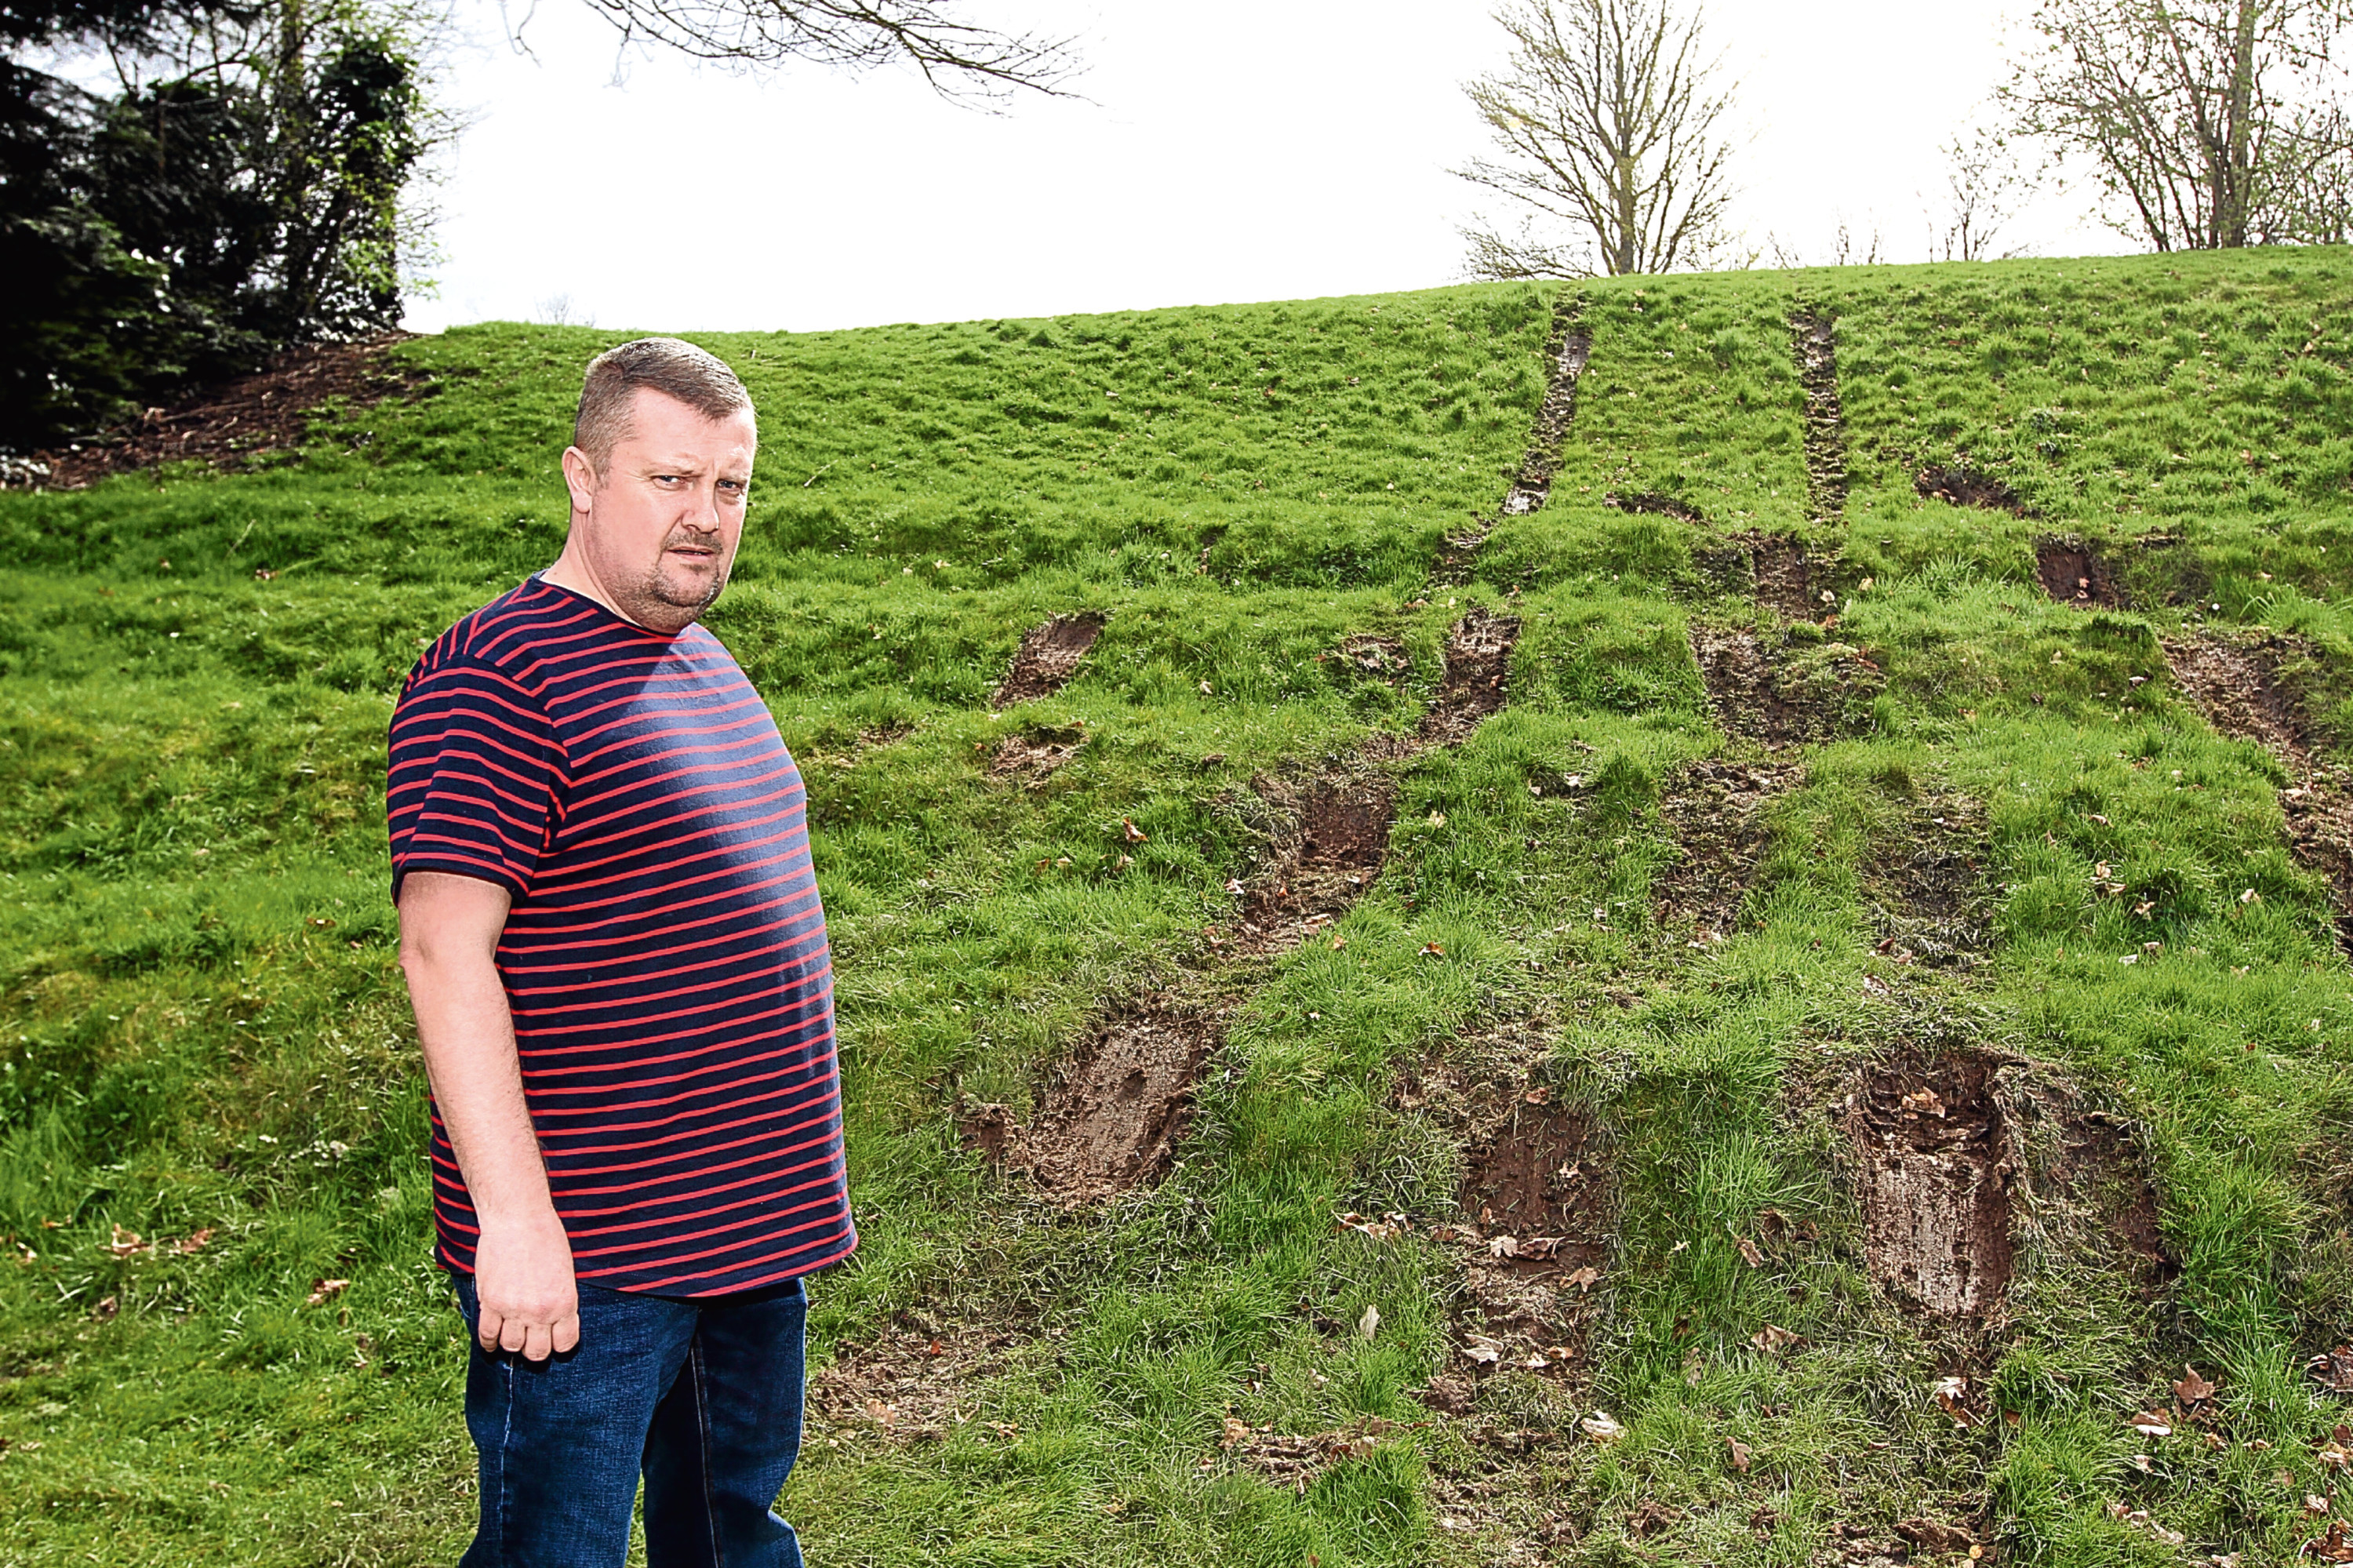 Dean Duncan, who runs Castle Functions Dundee, has hit out at the driver who tore up grass at Mains Castle.